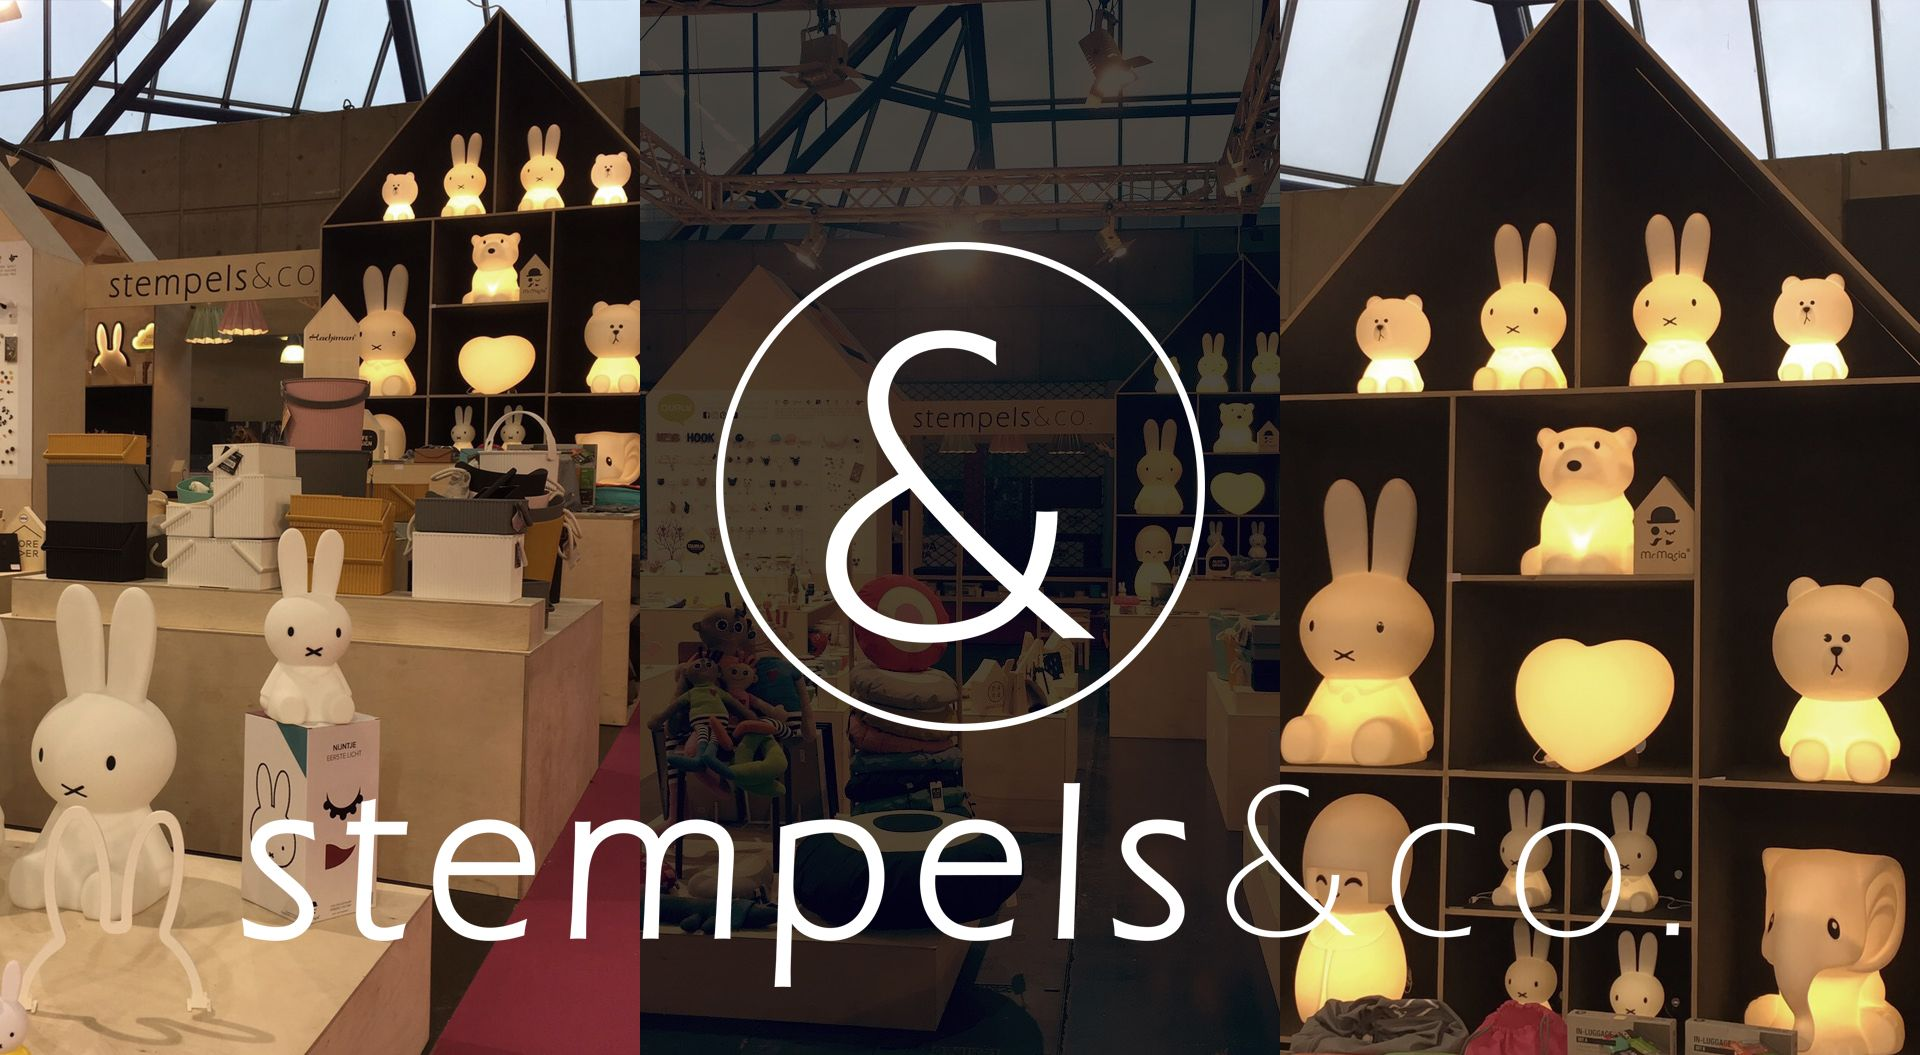 Mr Maria Stempels & Co at Maison & Objet